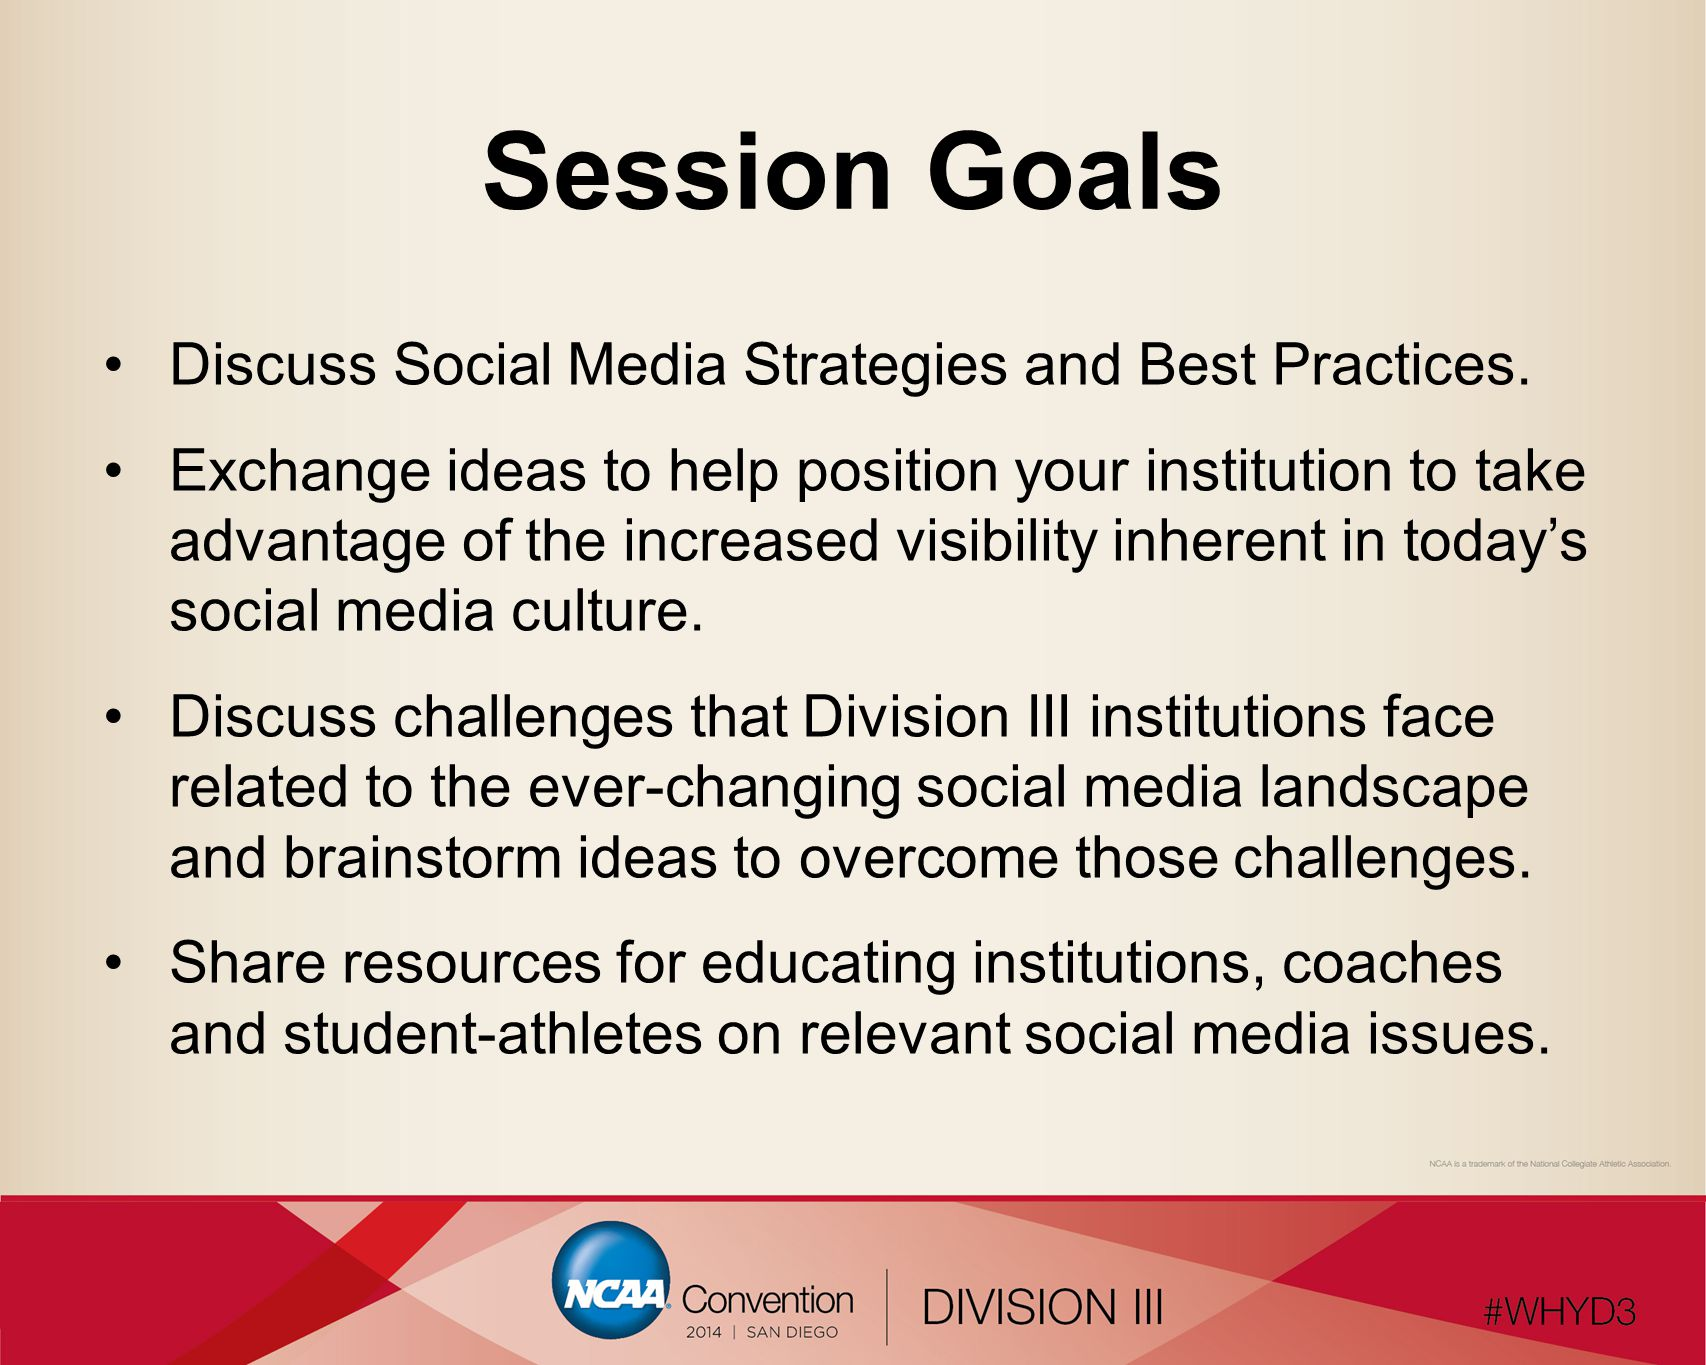 Social Media to Promote Pacific University FACEBOOK News Stories and Announcements Features Photos Game Promotions TWITTER News Stories and Announcements In-Game Scoring Updates Fan Interaction Links to News Stories YOUTUBE Highlight Videos Interviews Videos of Special Events INSTAGRAM Photo Collages Instant Video Highlights